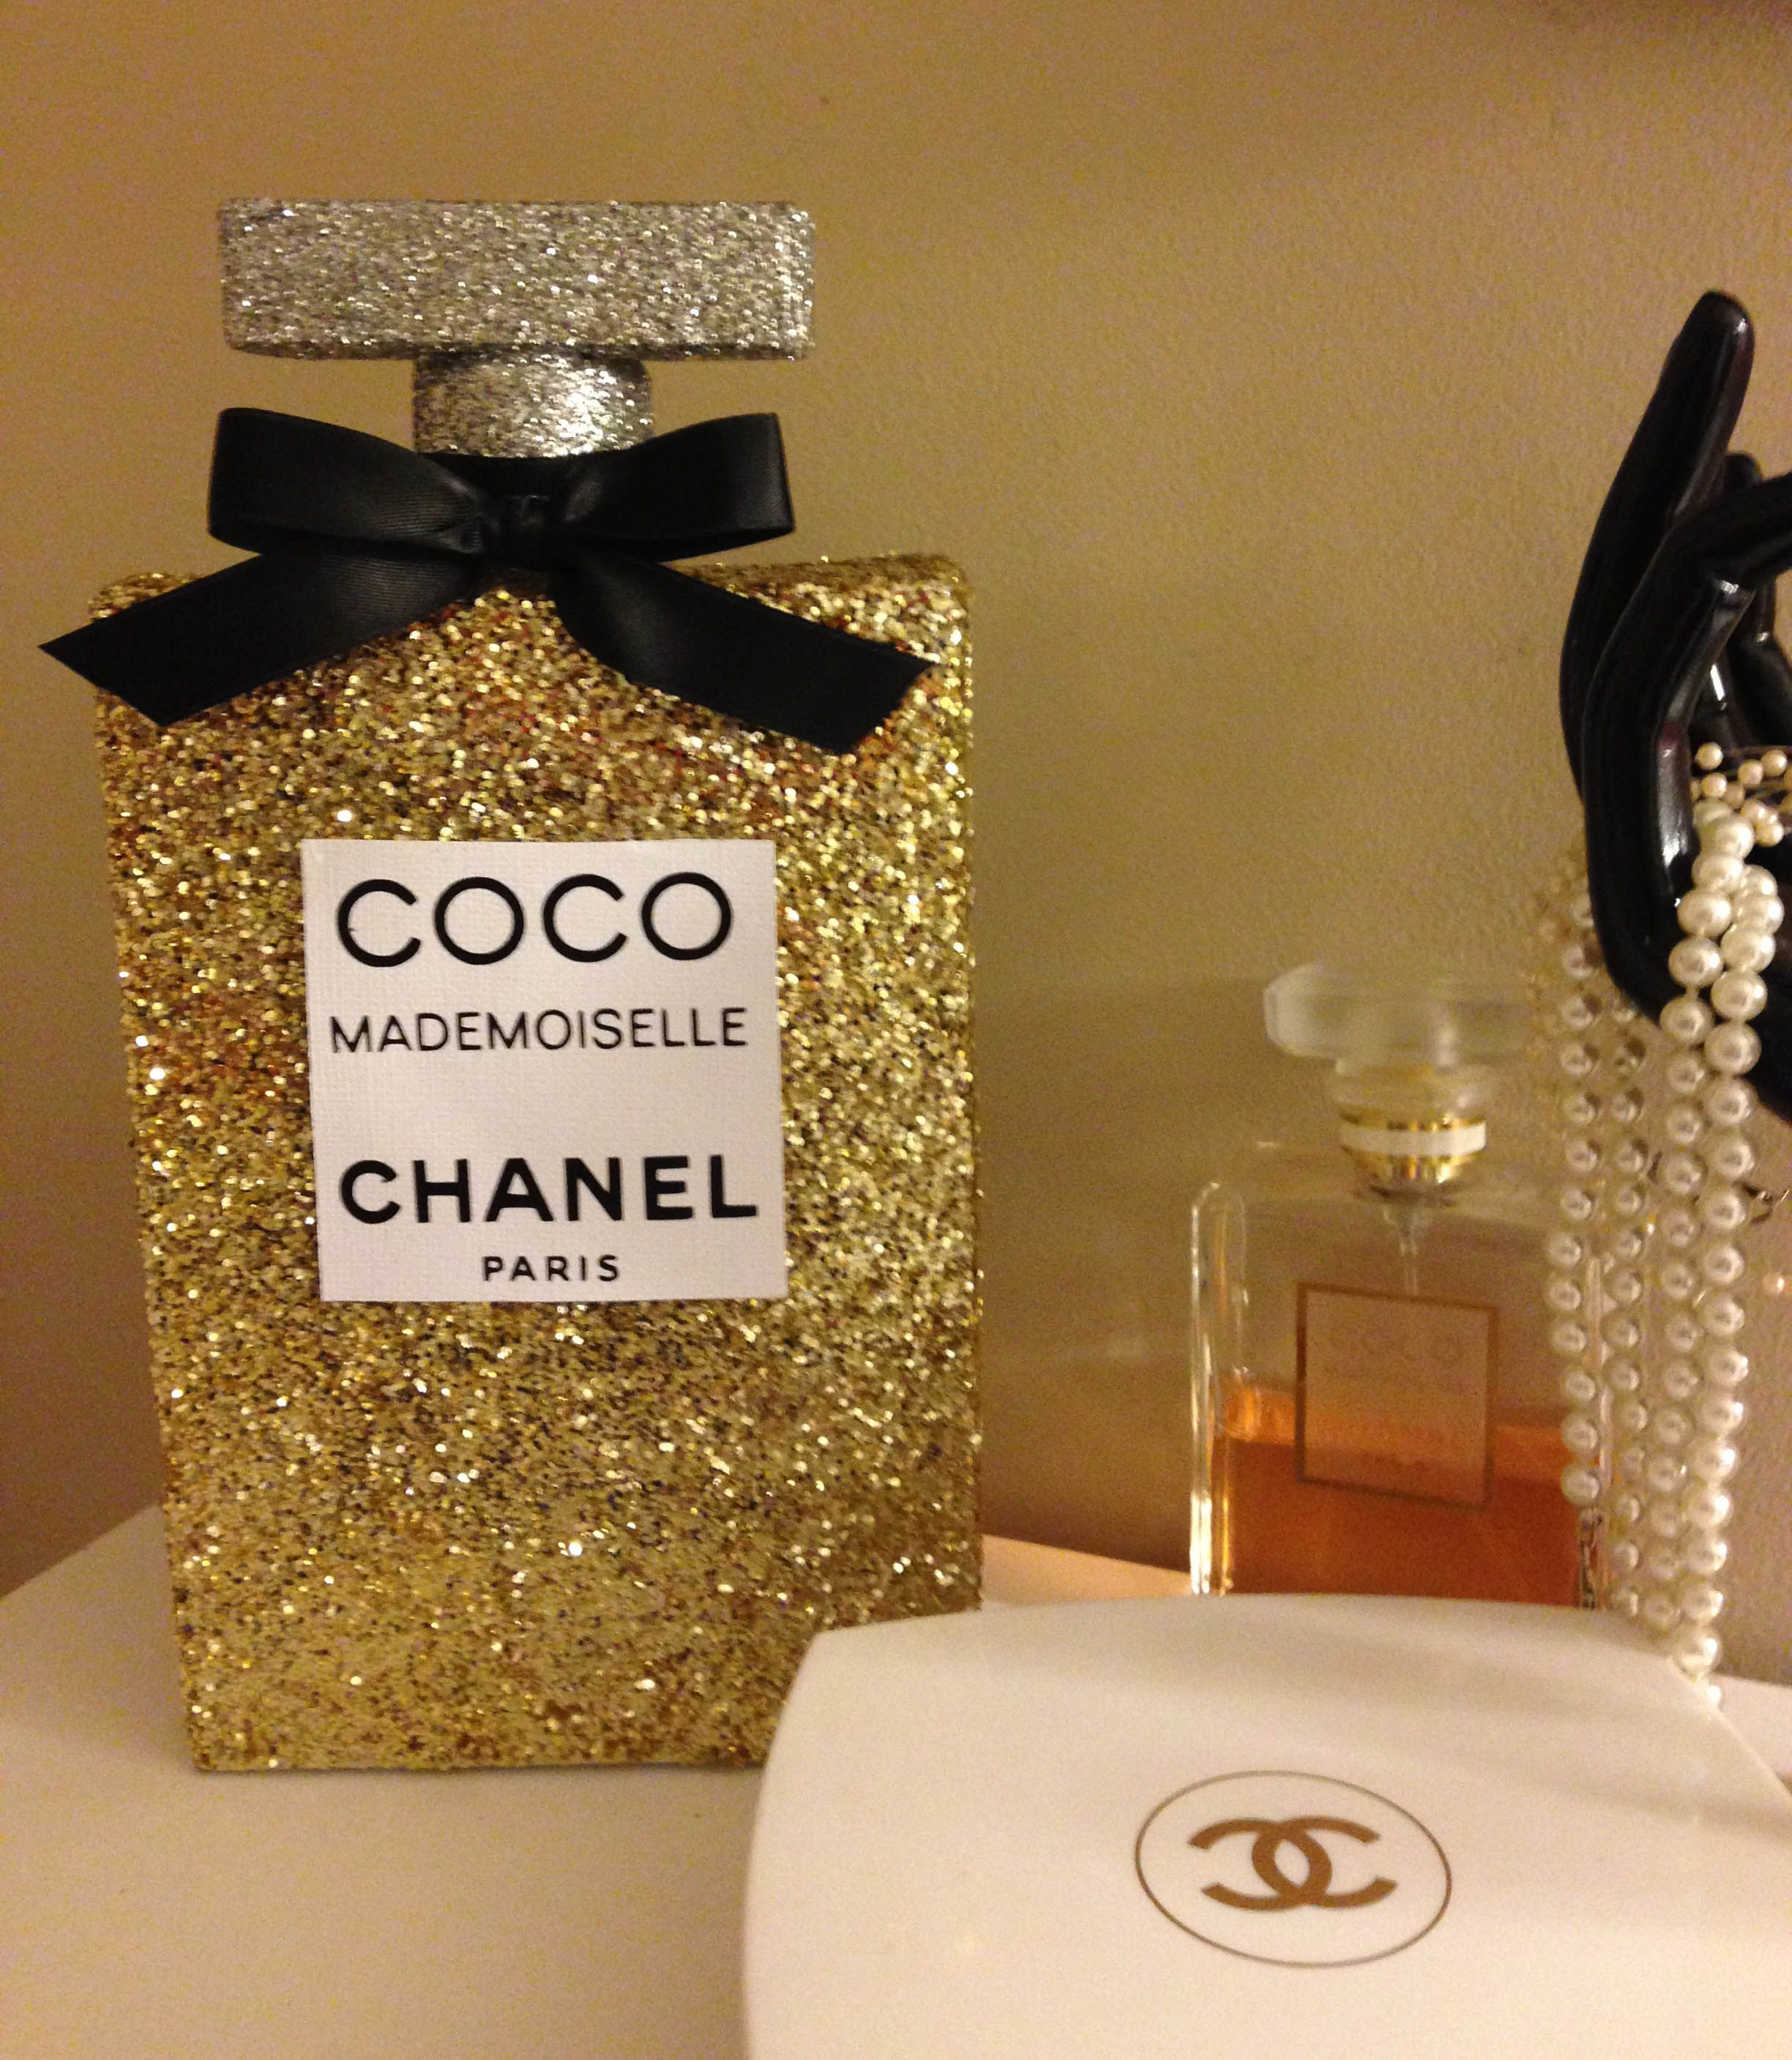 glitter coco chanel Mademoiselle 3D perfume bottle I made  )  DIY ... 41be83141d